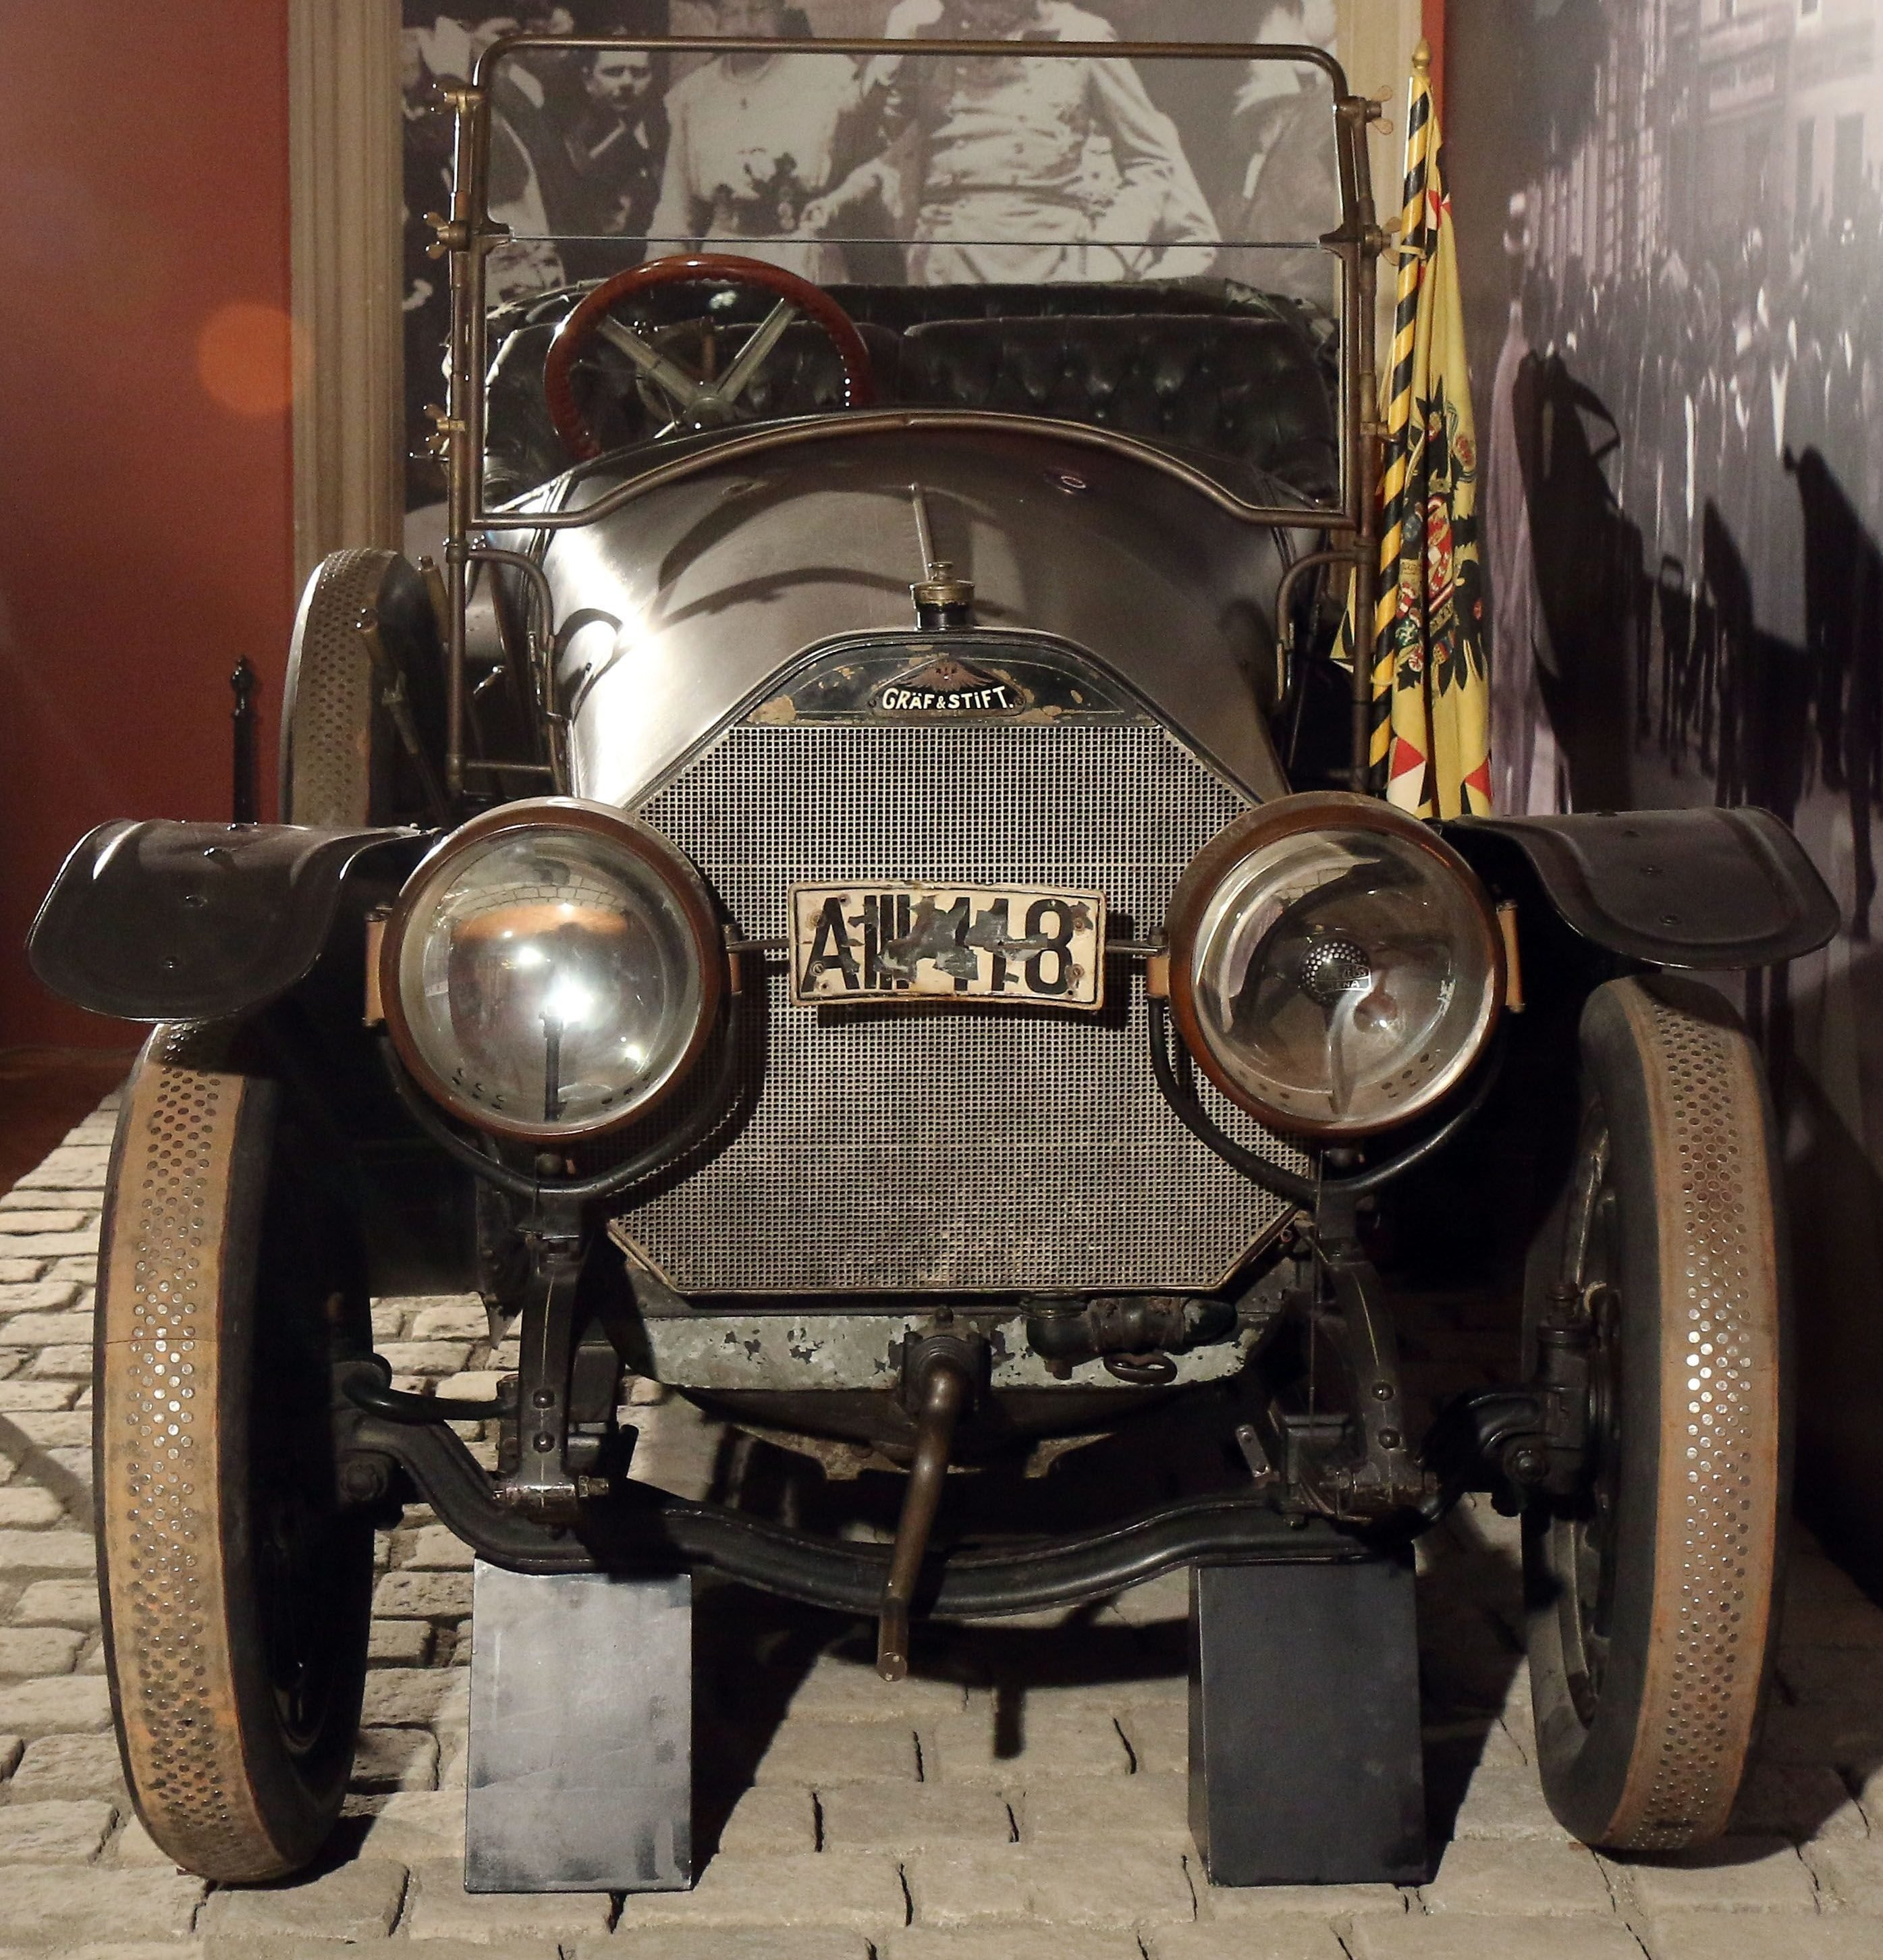 Mandatory Credit: Photo by Ronald Zak/AP/Shutterstock (6763899q) The car in where Austrian Archduke Franz Ferdinand and his wife Sophie were shot to death is on display at the Museum of Military History in Vienna, Austria, on . Archduke Franz Ferdinand and his wife Sophie were assassinated in Sarajevo on June 28, 1914, an event which led to the outbreak of World War I Austria Archduke Assassination WWI, Vienna, Austria